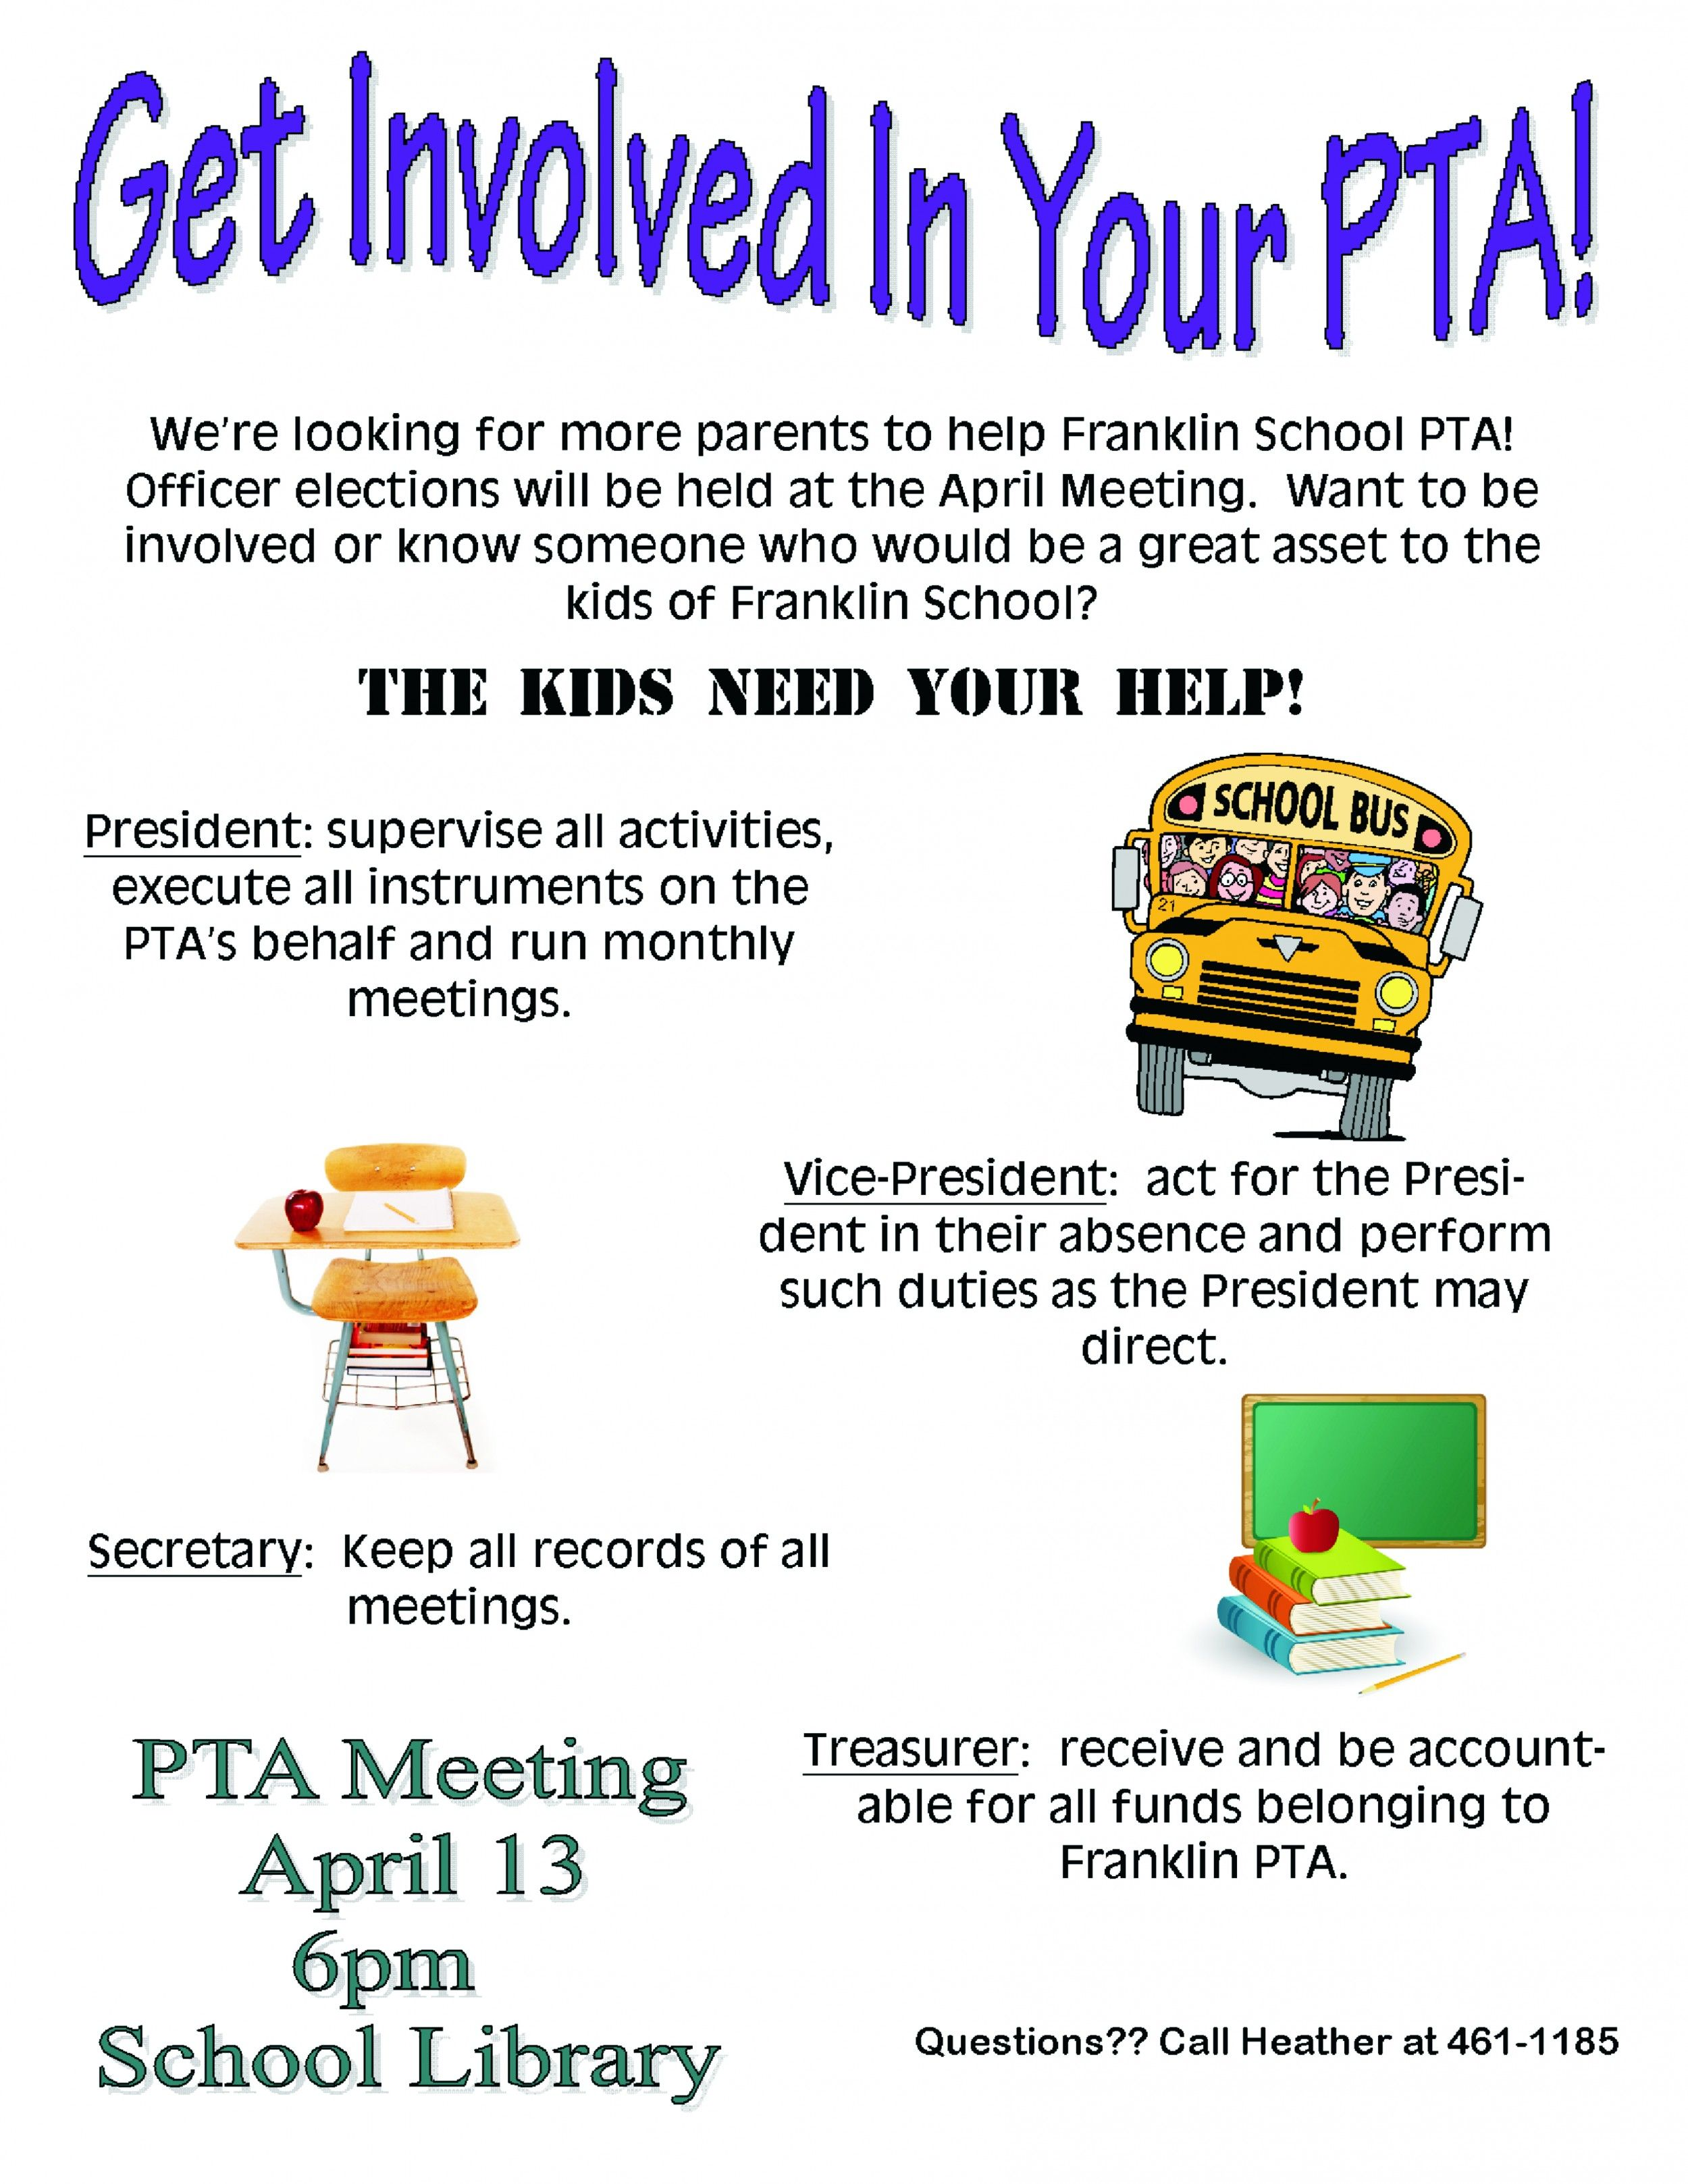 Pto Volunteer Recruitment Flyer Just B Cause Ptg Ideas